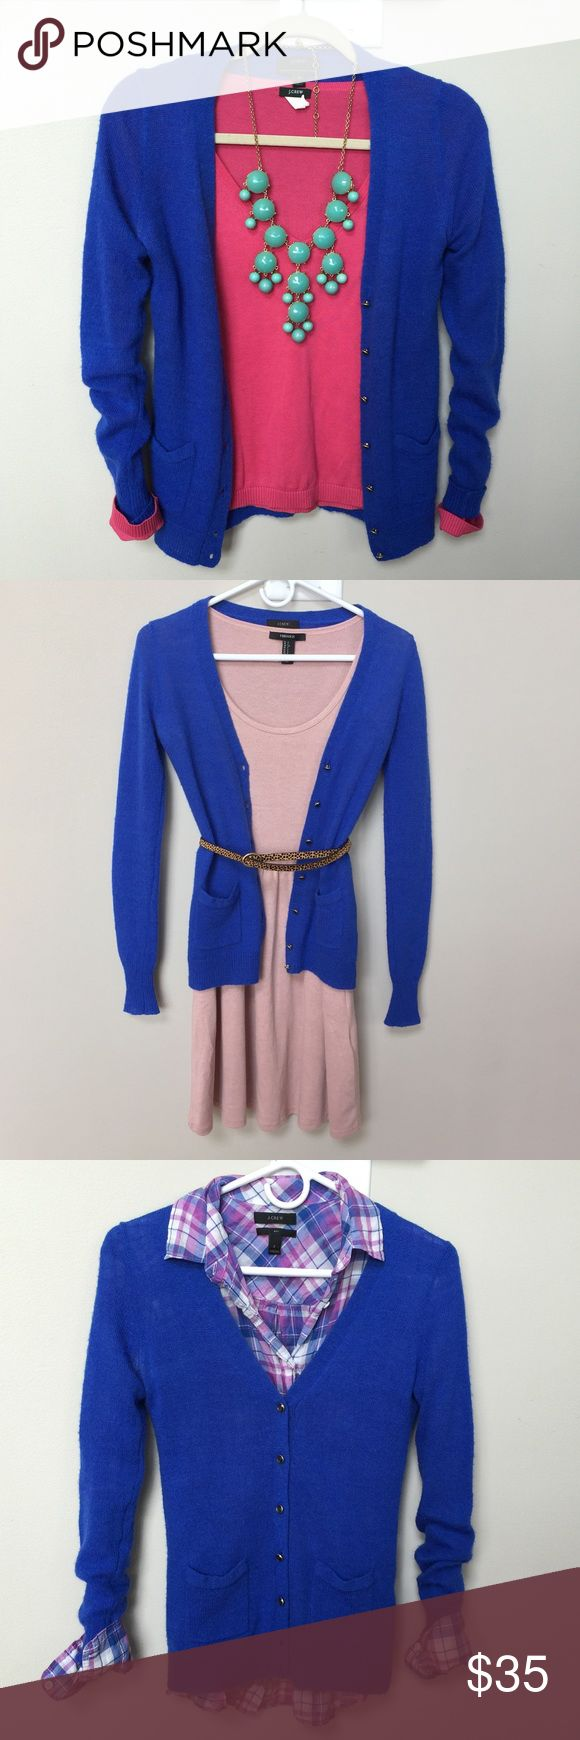 Jcrew Royal blue Cardigan Jcrew Cardigan- Worn 3 times- royal blue, light weight, two front pockets, button up,size XS.. Pink top also available in my closet! J Crew Sweaters Cardigans